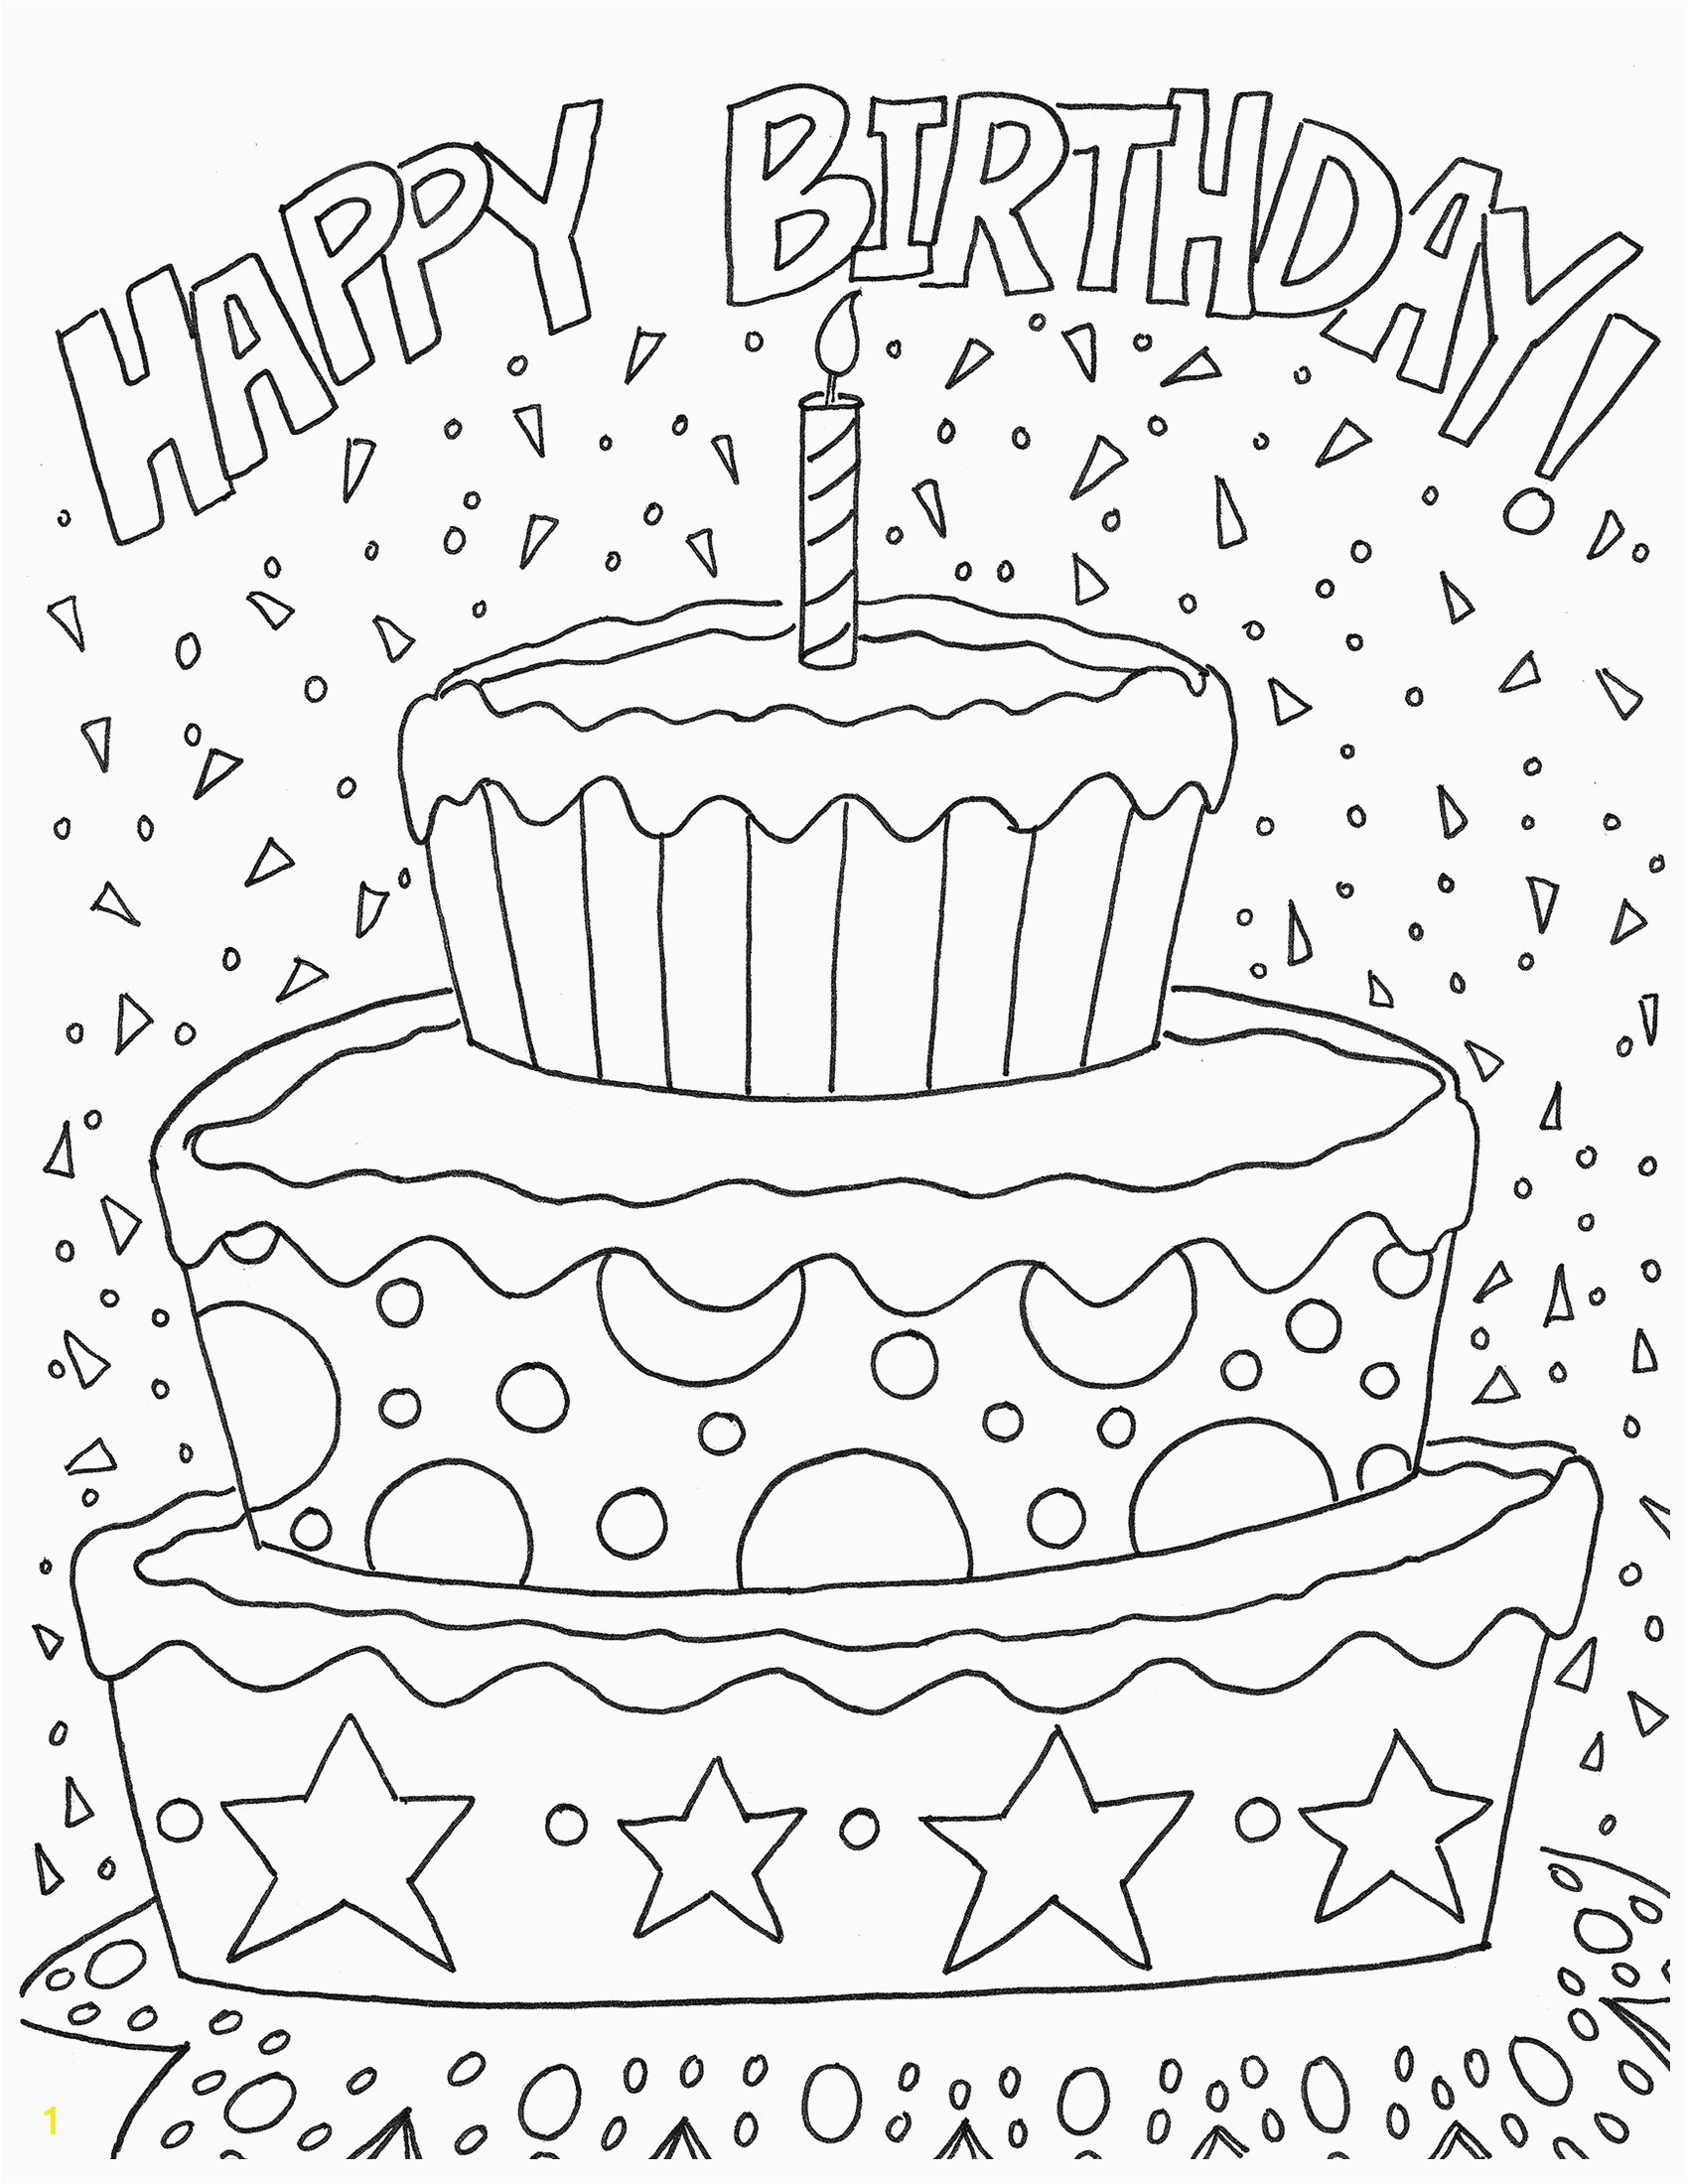 Happy Birthday Pages to Color Beautiful Happy Birthday Coloring Page with Wallpapers – Fun Time